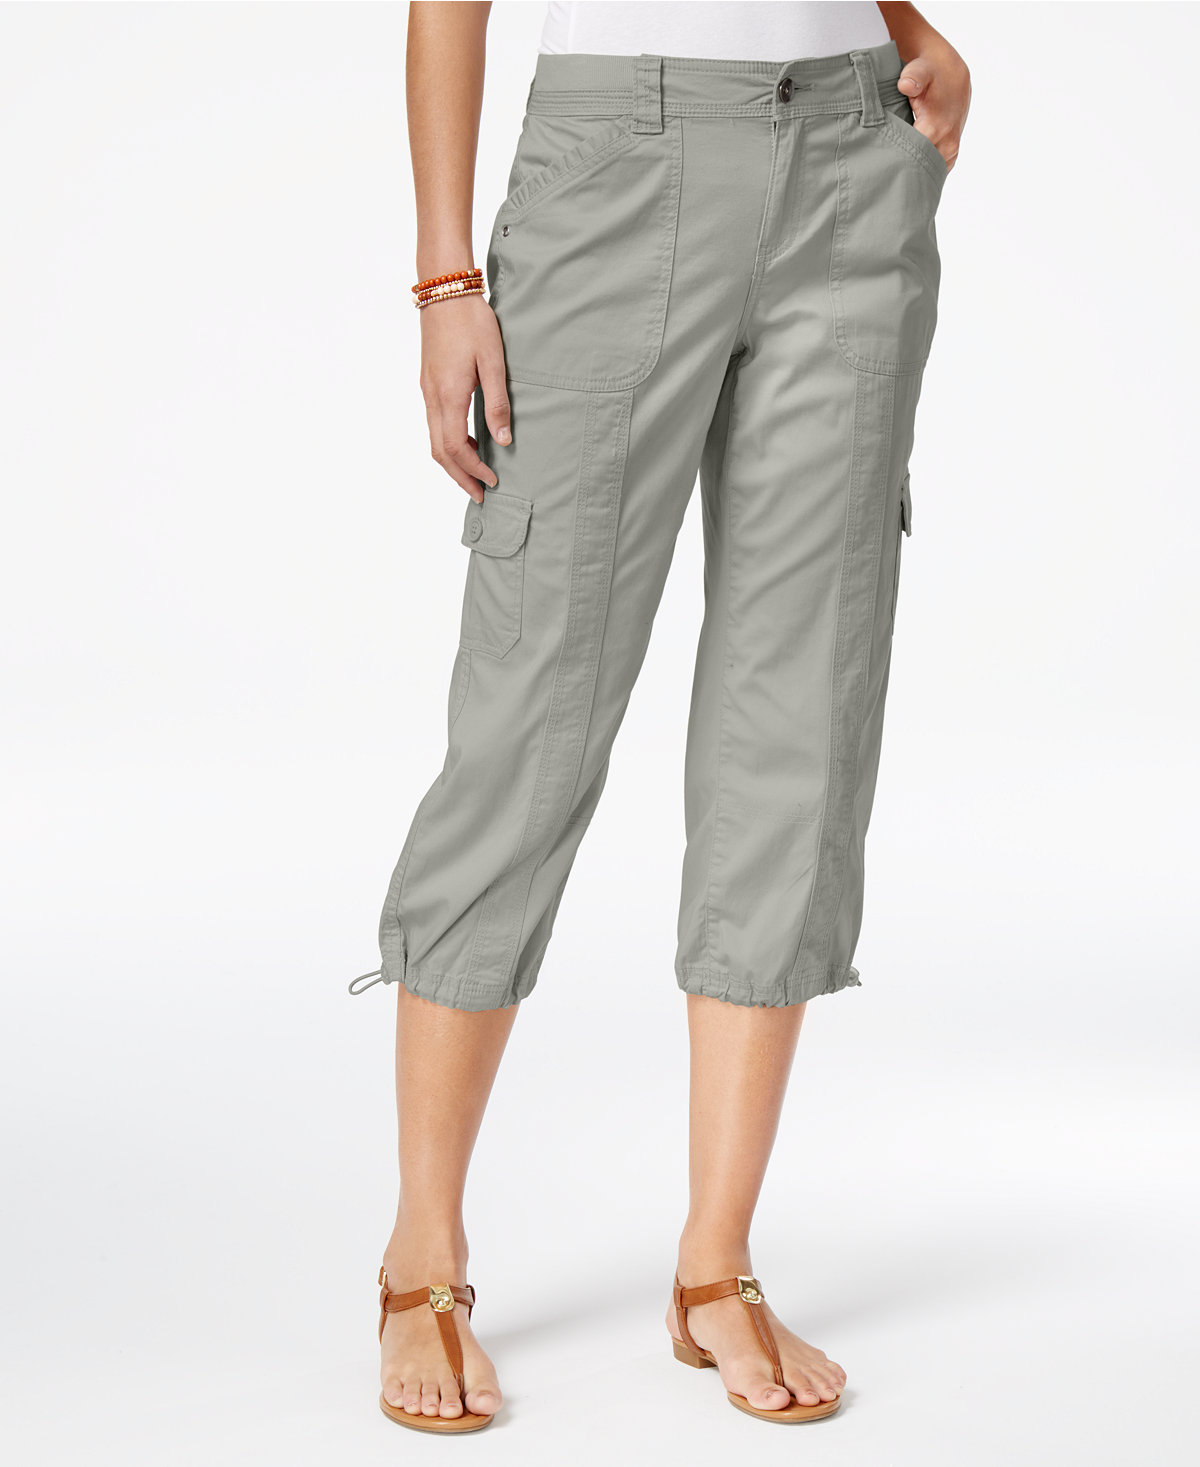 Create signature styles from the variety of hip cuts of trendy capri pants for women from Old Navy. An Updated Wardrobe Staple Offered in Multiple Styles. Discover a fresh approach from the edited updates to a basic wardrobe staple in this collection of trendy women's capris.